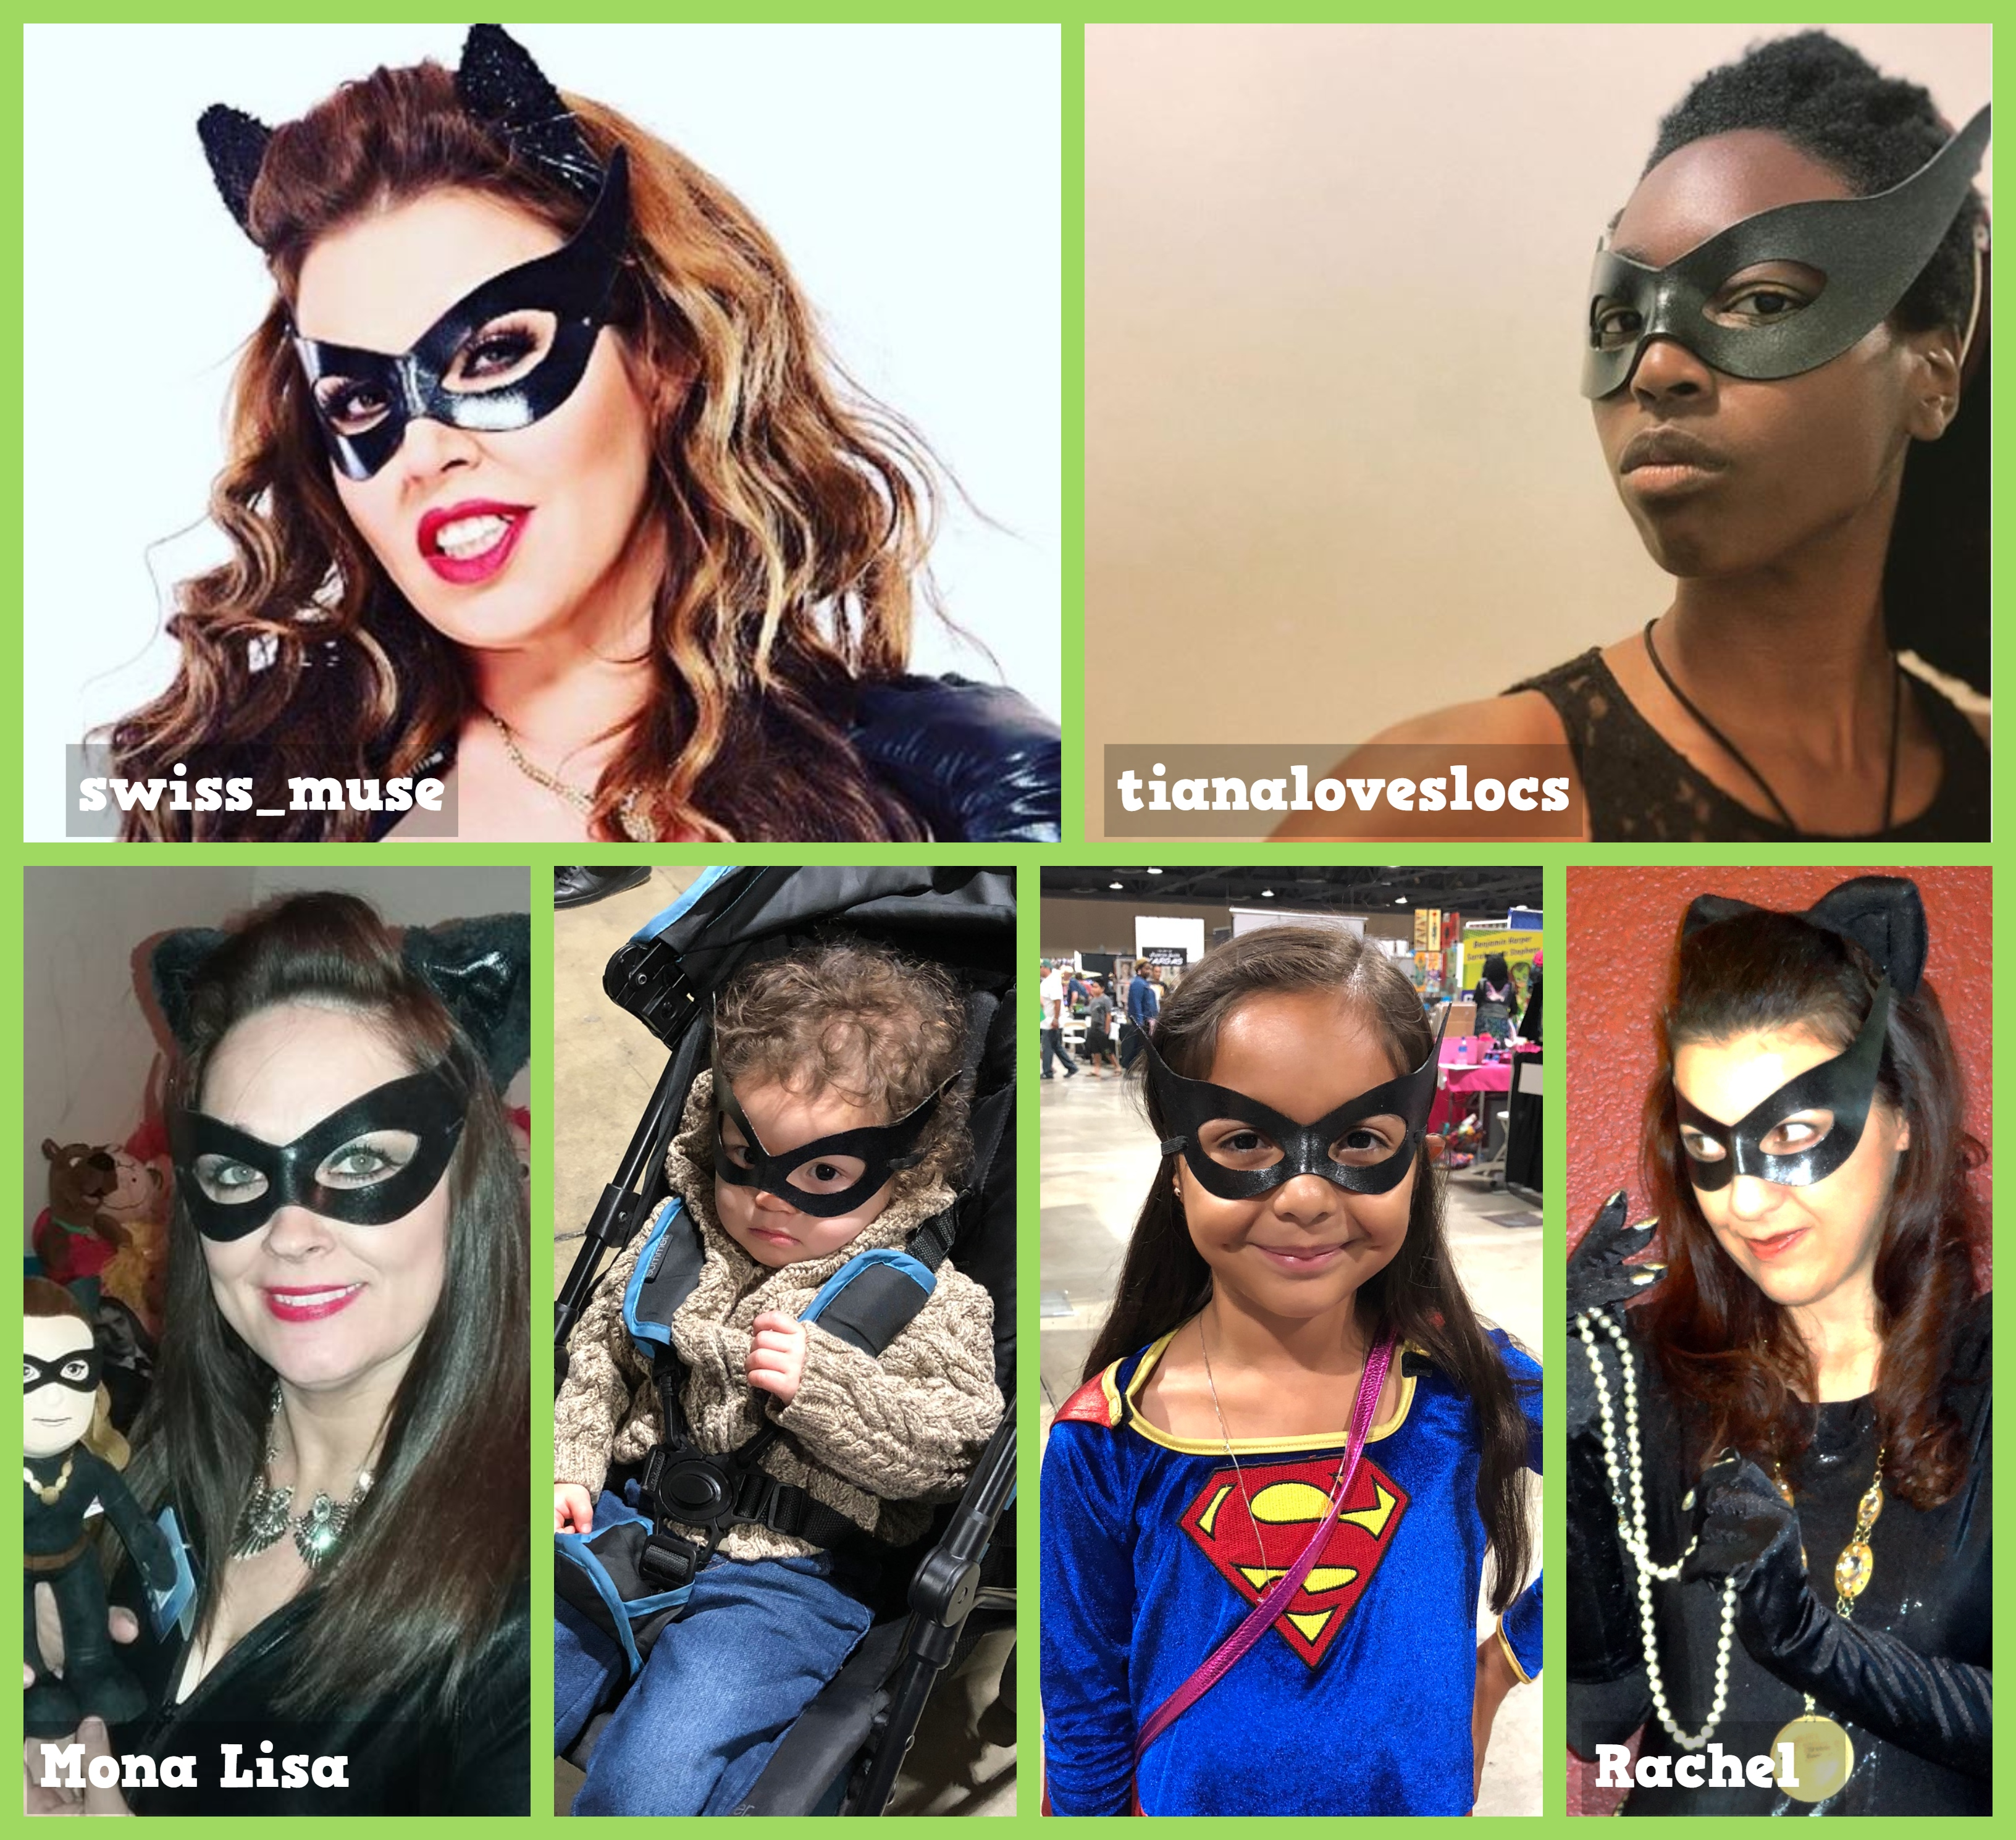 catwoman-cosplay-collage-2019.jpg